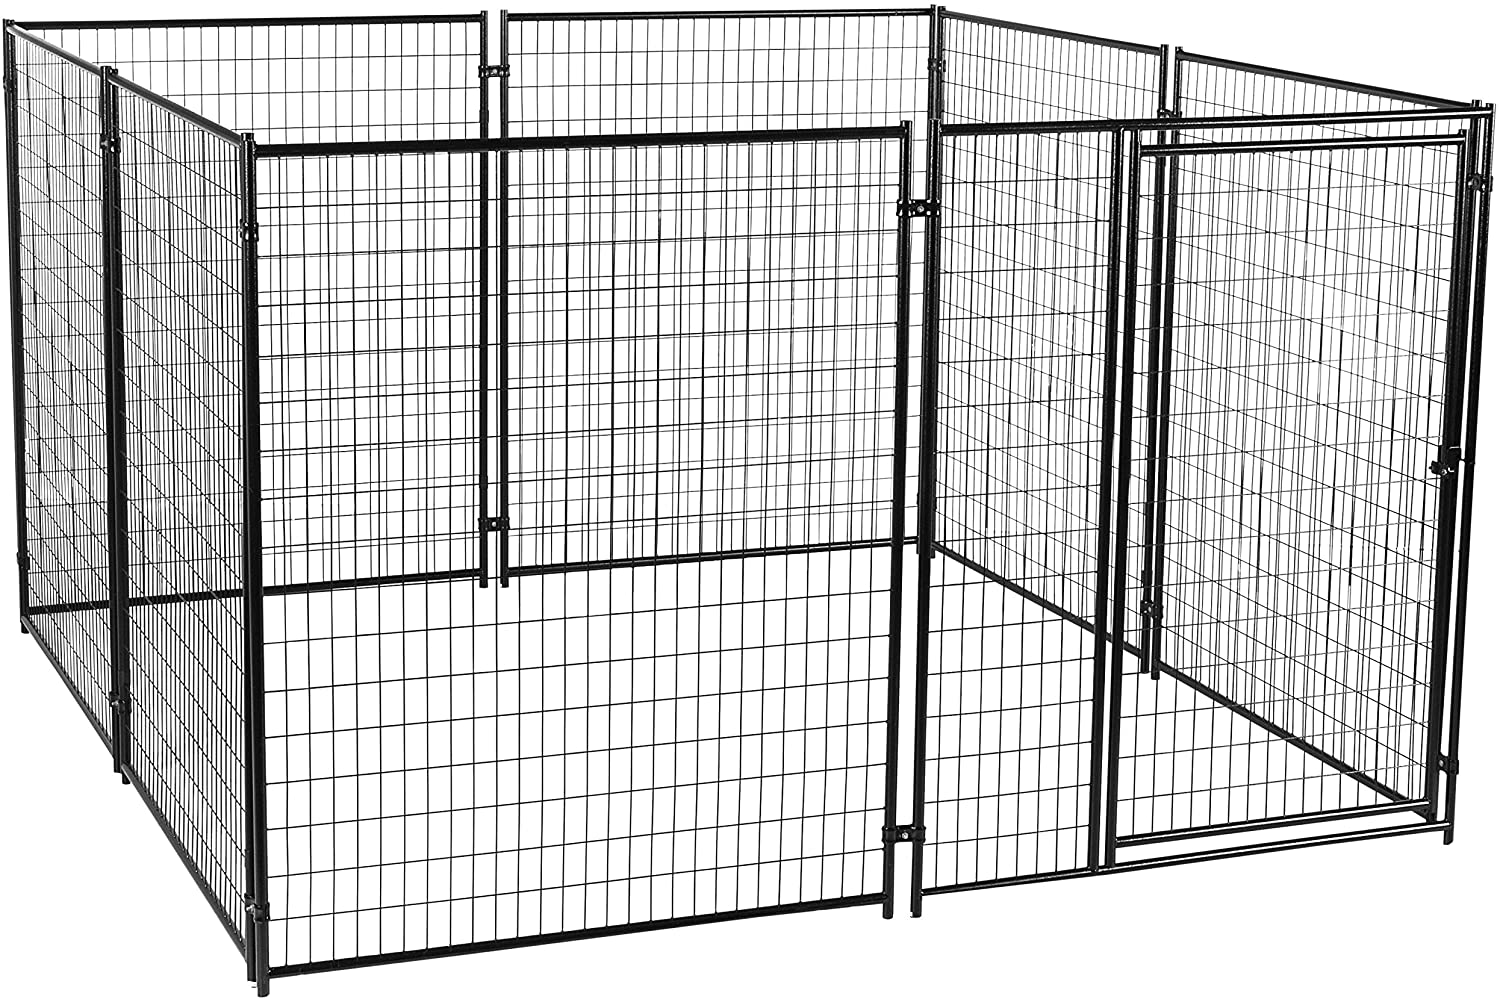 Amazon Com Dog Kennel Lucky Dog Modular Box Kennel This Welded Animal Enclosure Is Perfect For Medium To Large Dogs And Animals And Is Designed With Their Safety And Comfort